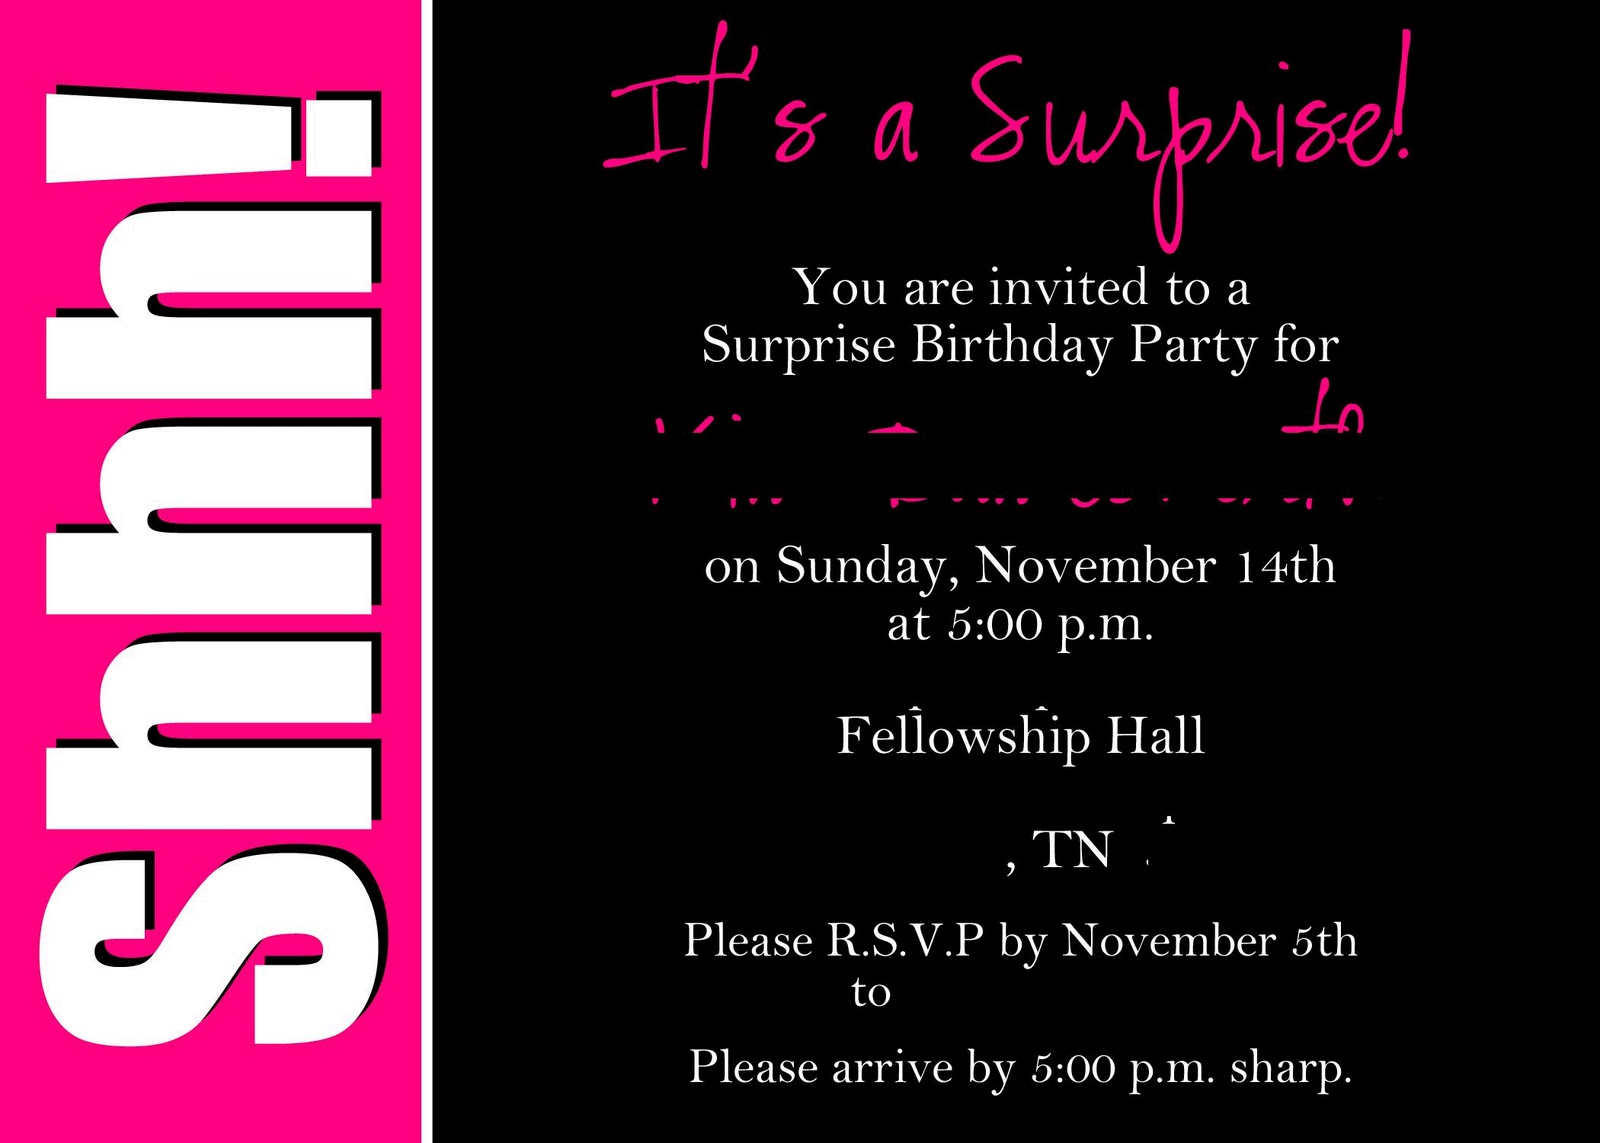 ... birthday party invitation for a party she is planning here it is